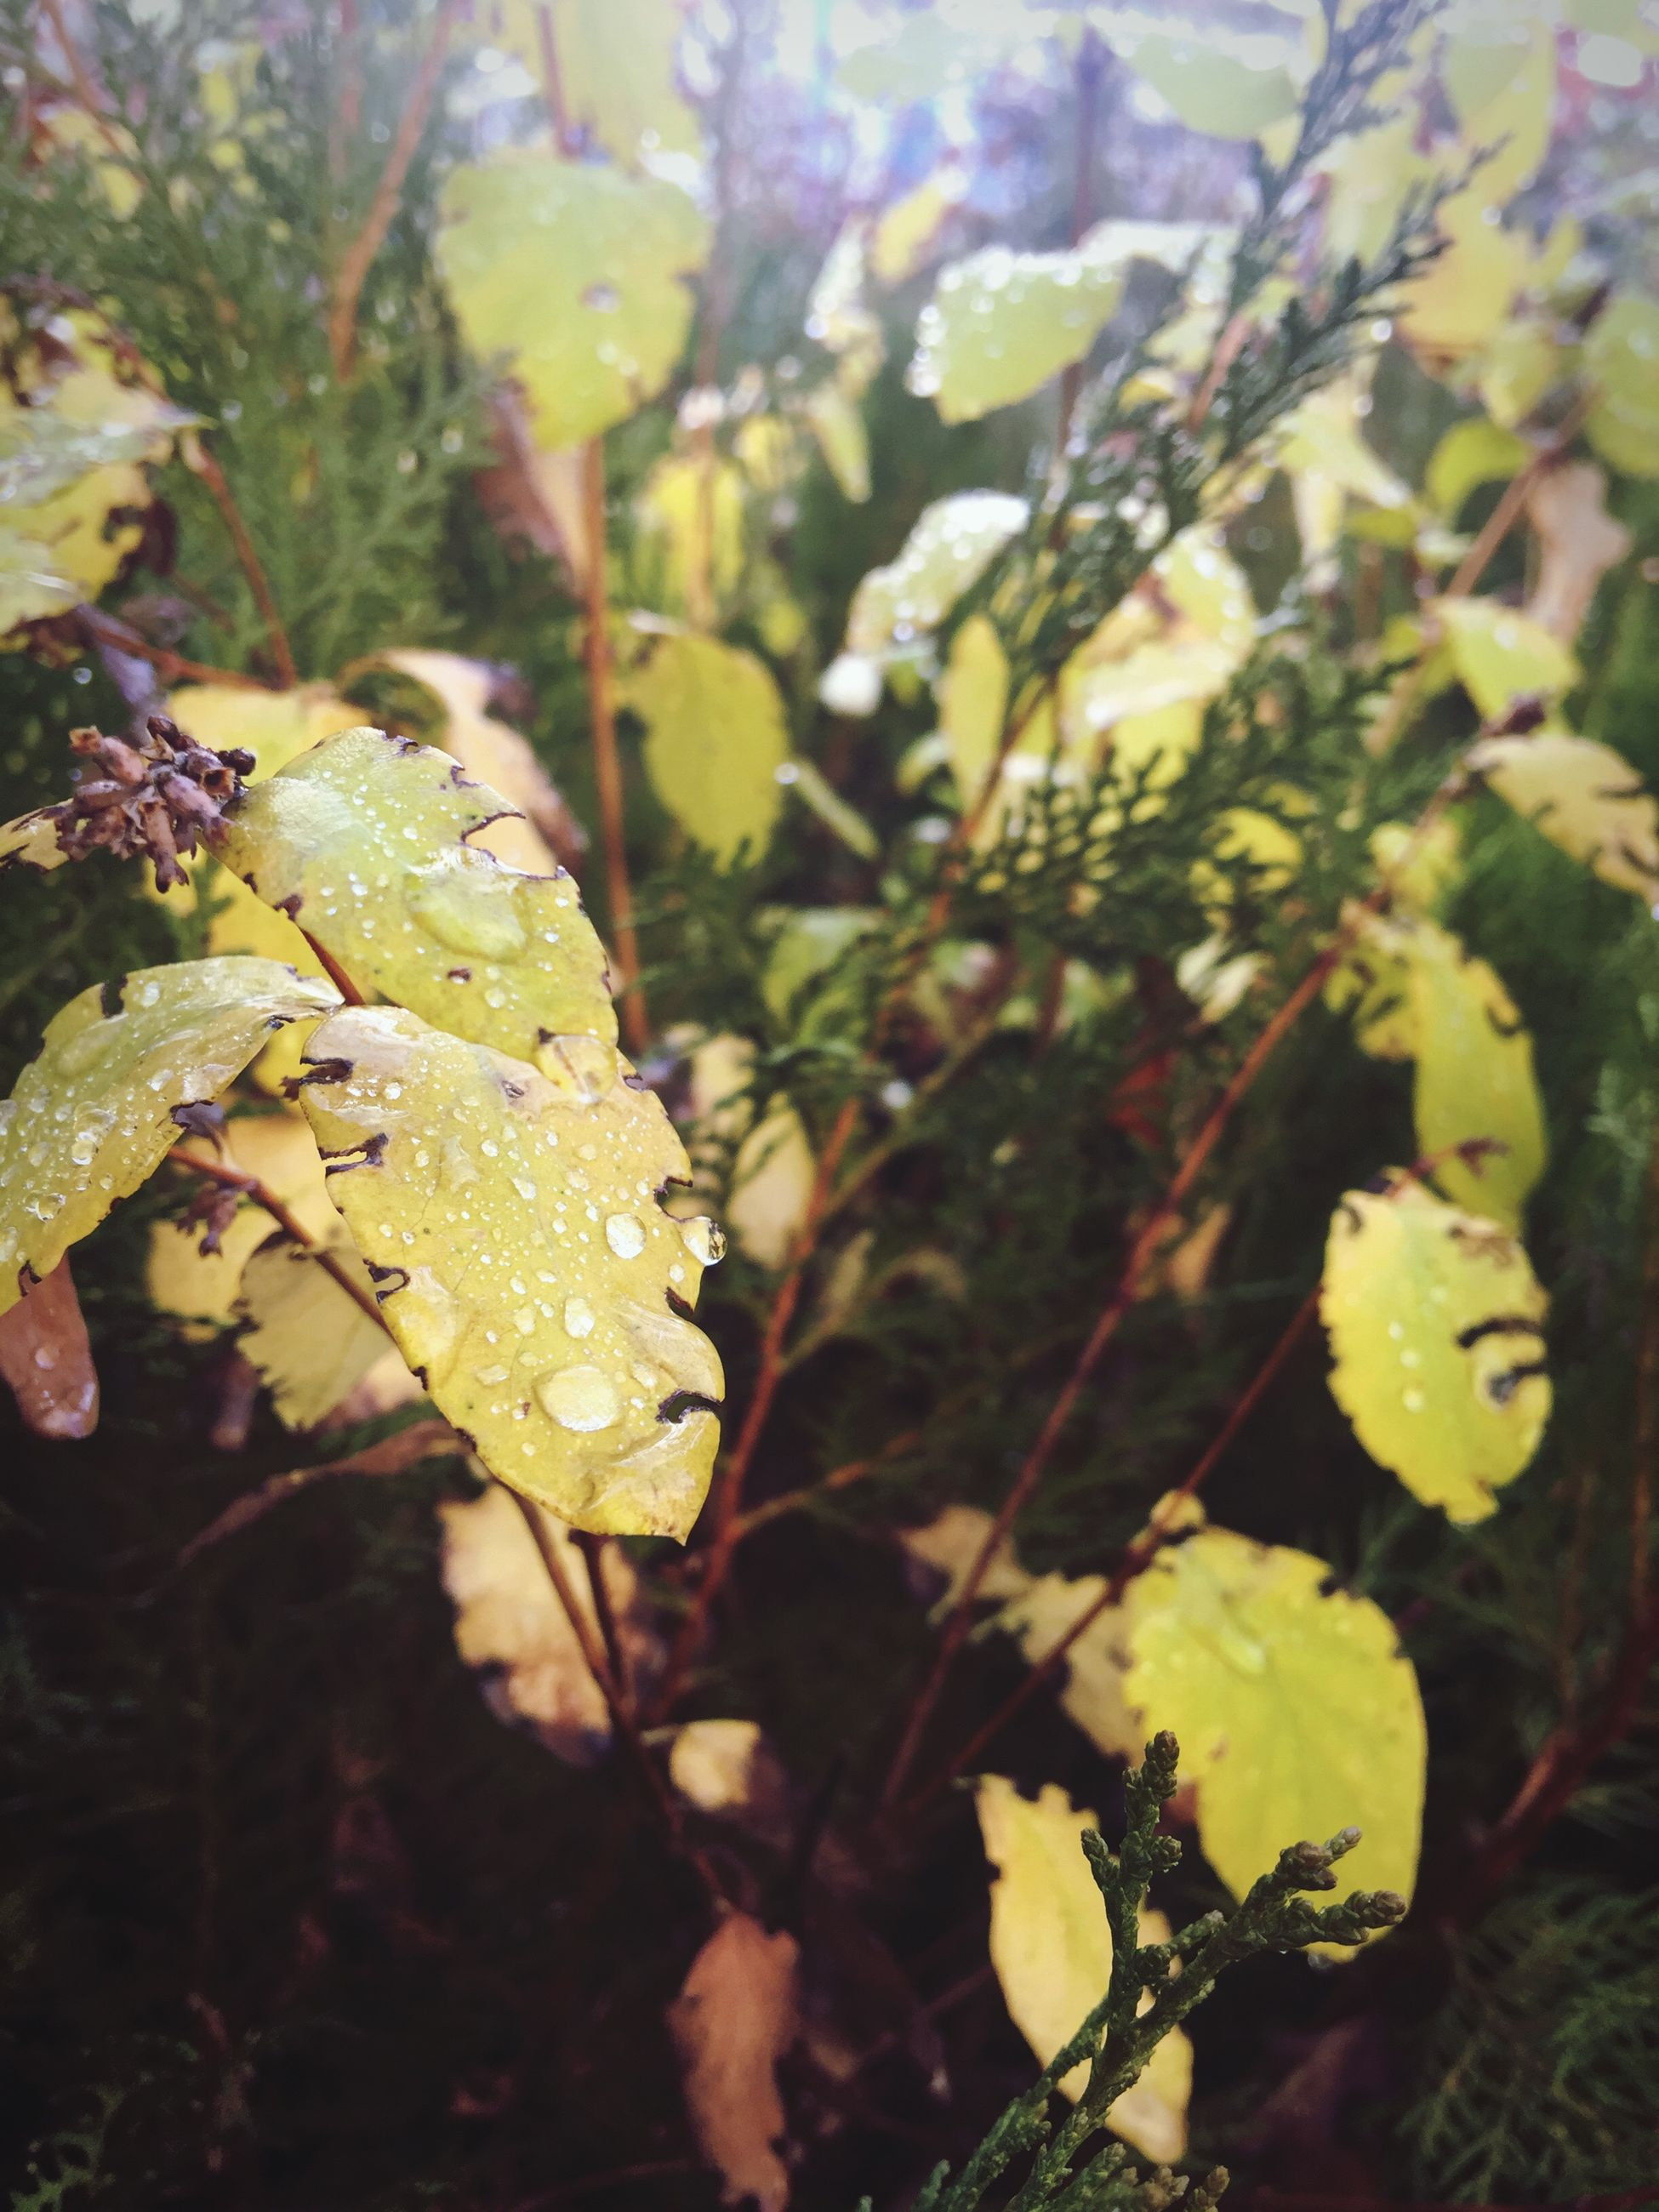 leaf, growth, close-up, nature, plant, focus on foreground, beauty in nature, freshness, fragility, season, drop, water, wet, tranquility, day, selective focus, yellow, outdoors, no people, leaves